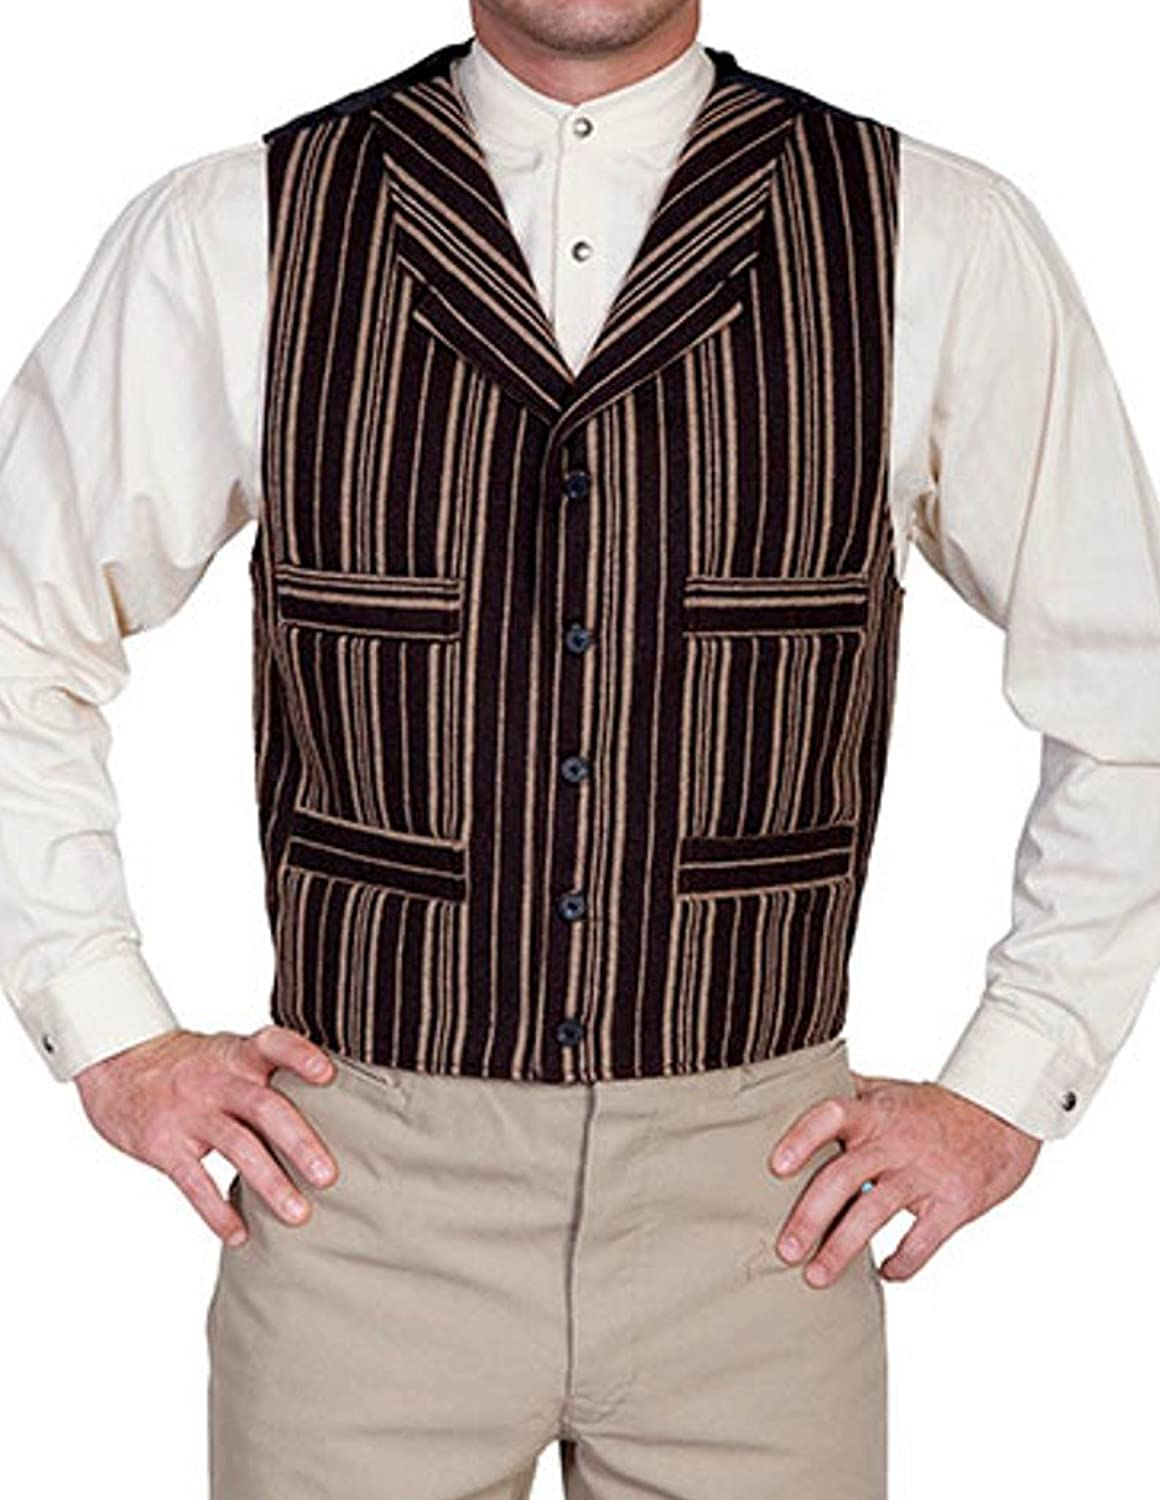 Men's Vintage Vests, Sweater Vests Wahmaker By Scully Mens Wahmaker Four Pocket Wool Blend Vest $79.85 AT vintagedancer.com